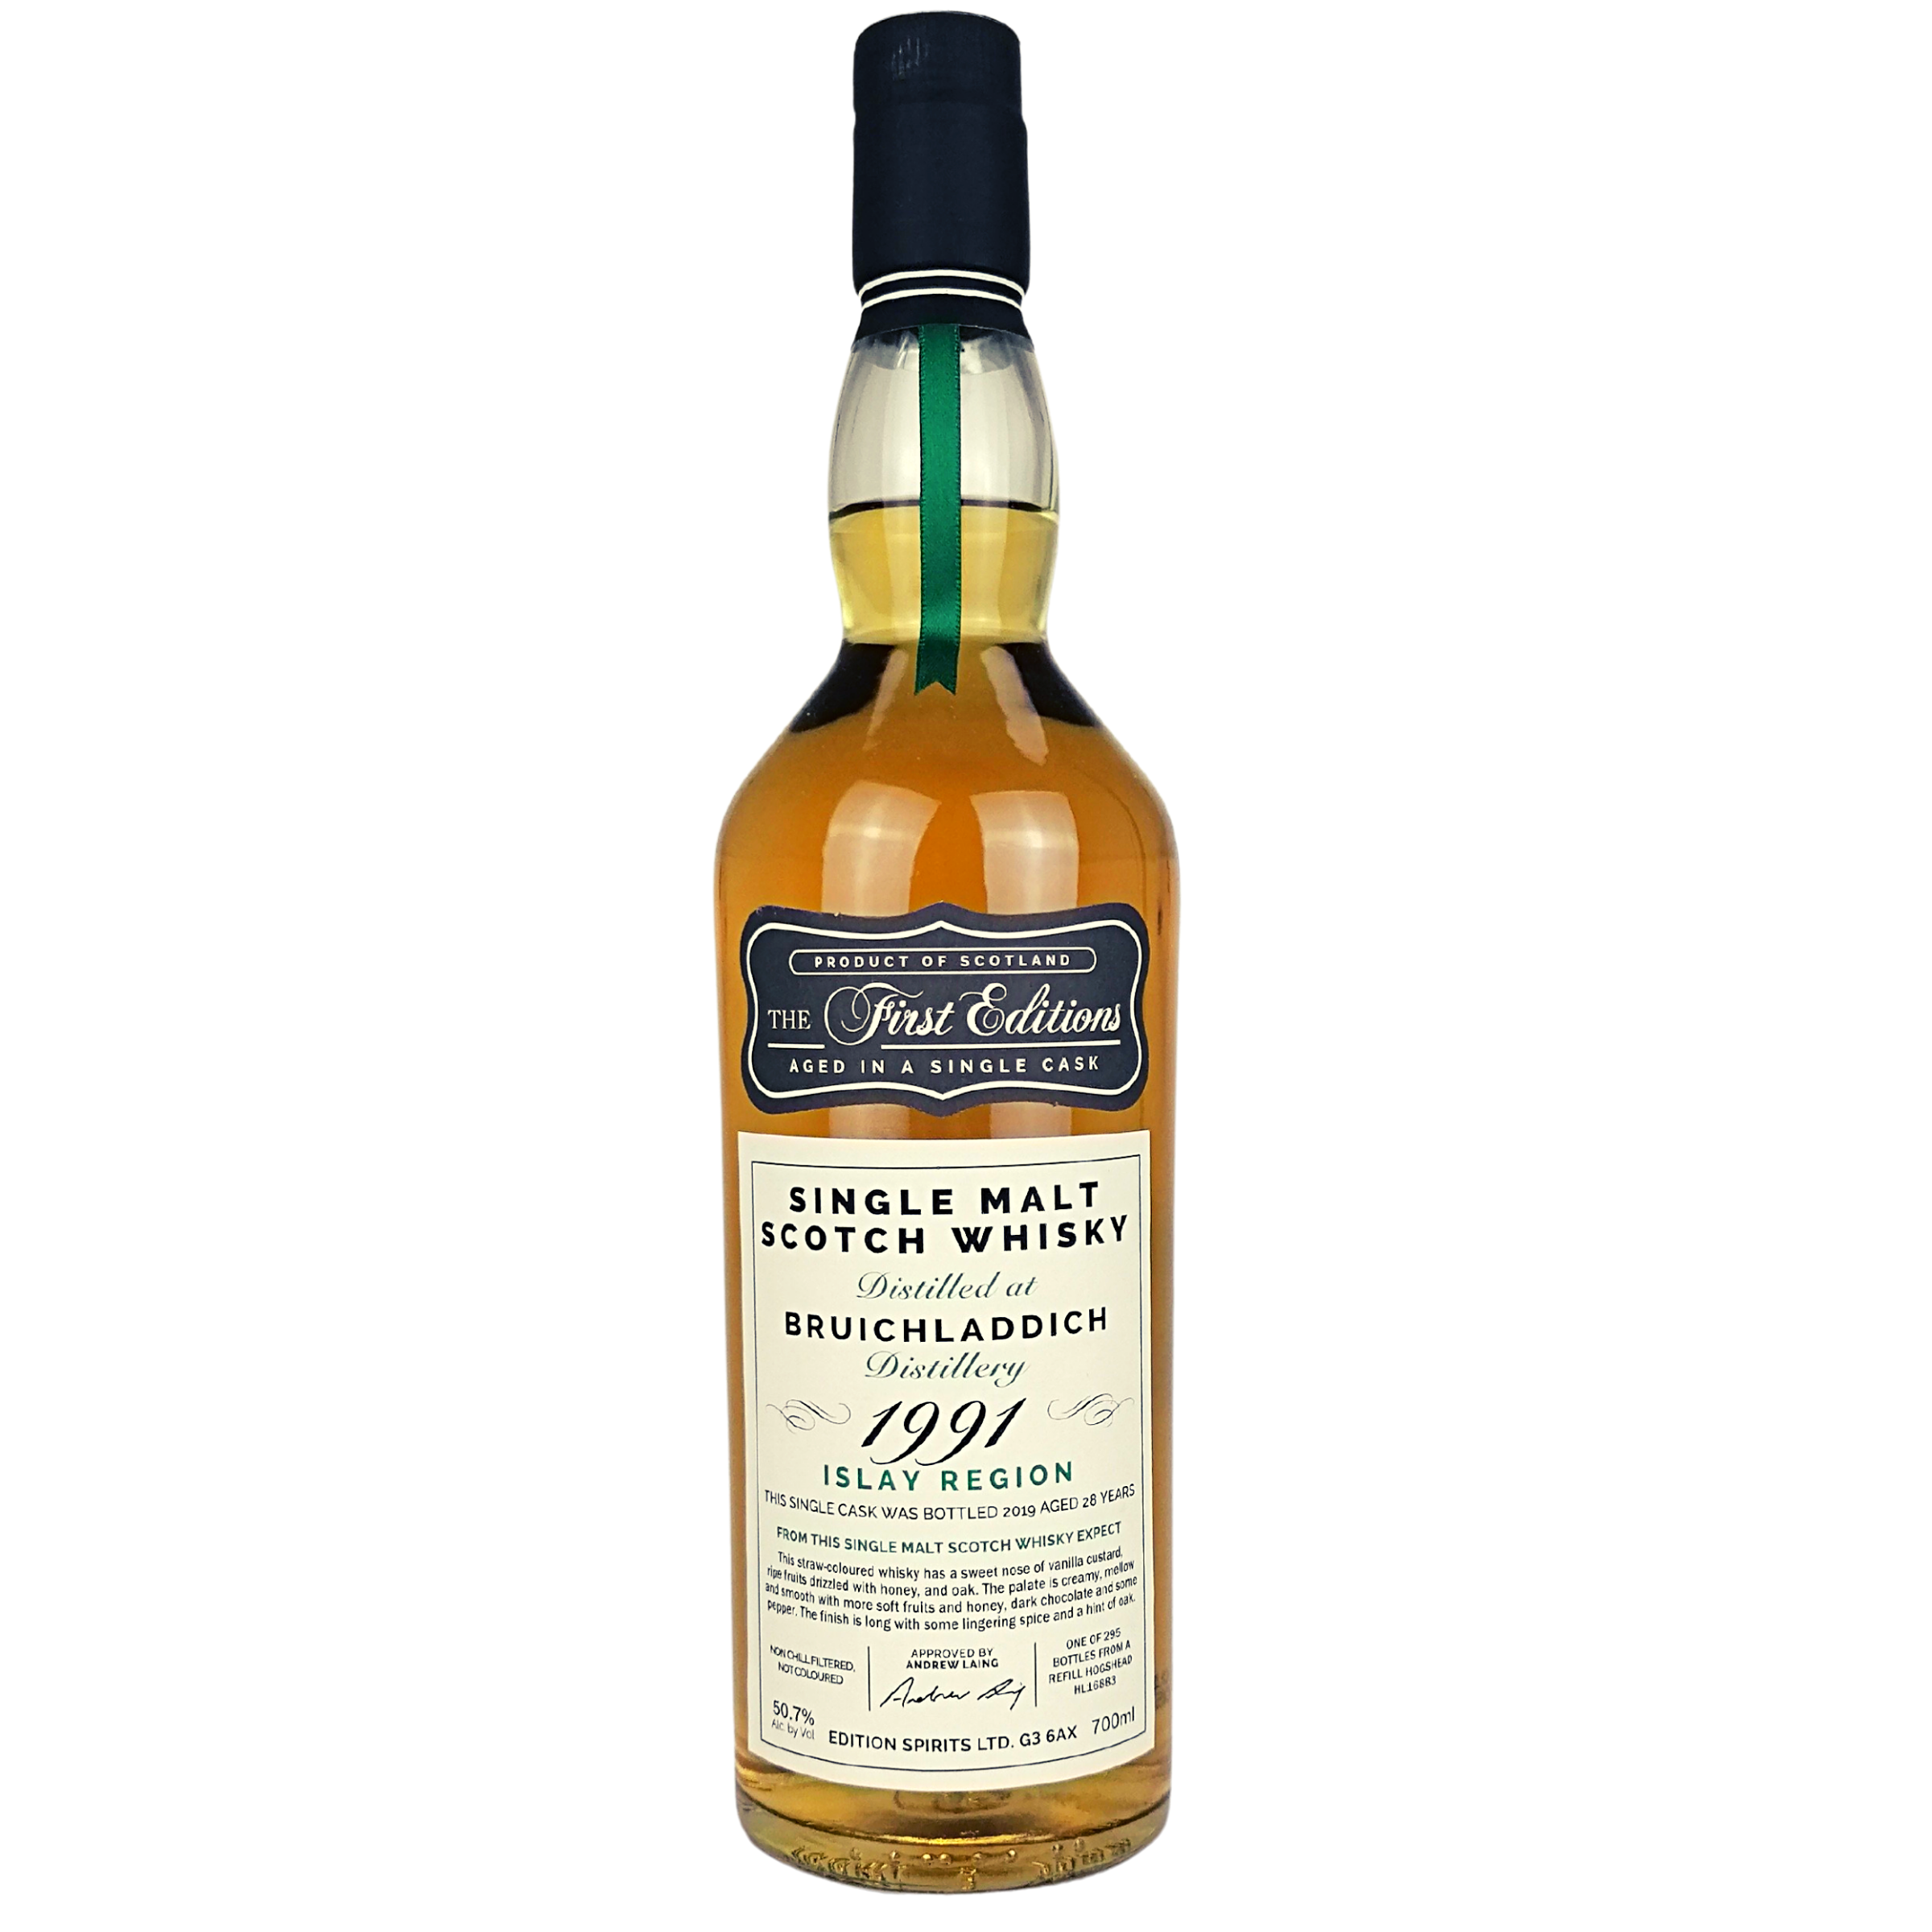 Bruichladdich 1991/2019 The First Editions